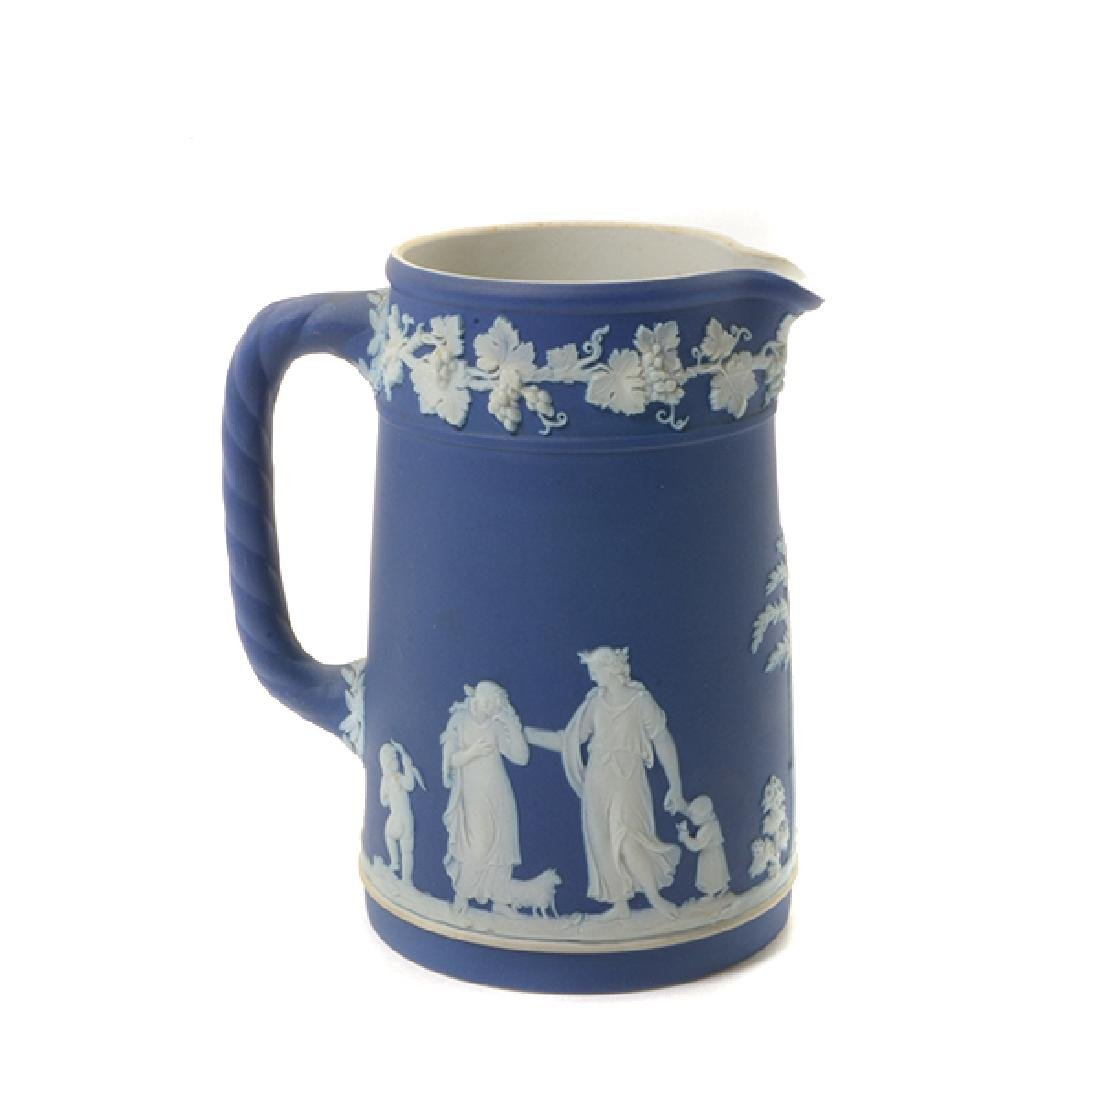 Collection of Wedgwood Jasperware Table Articles - 4